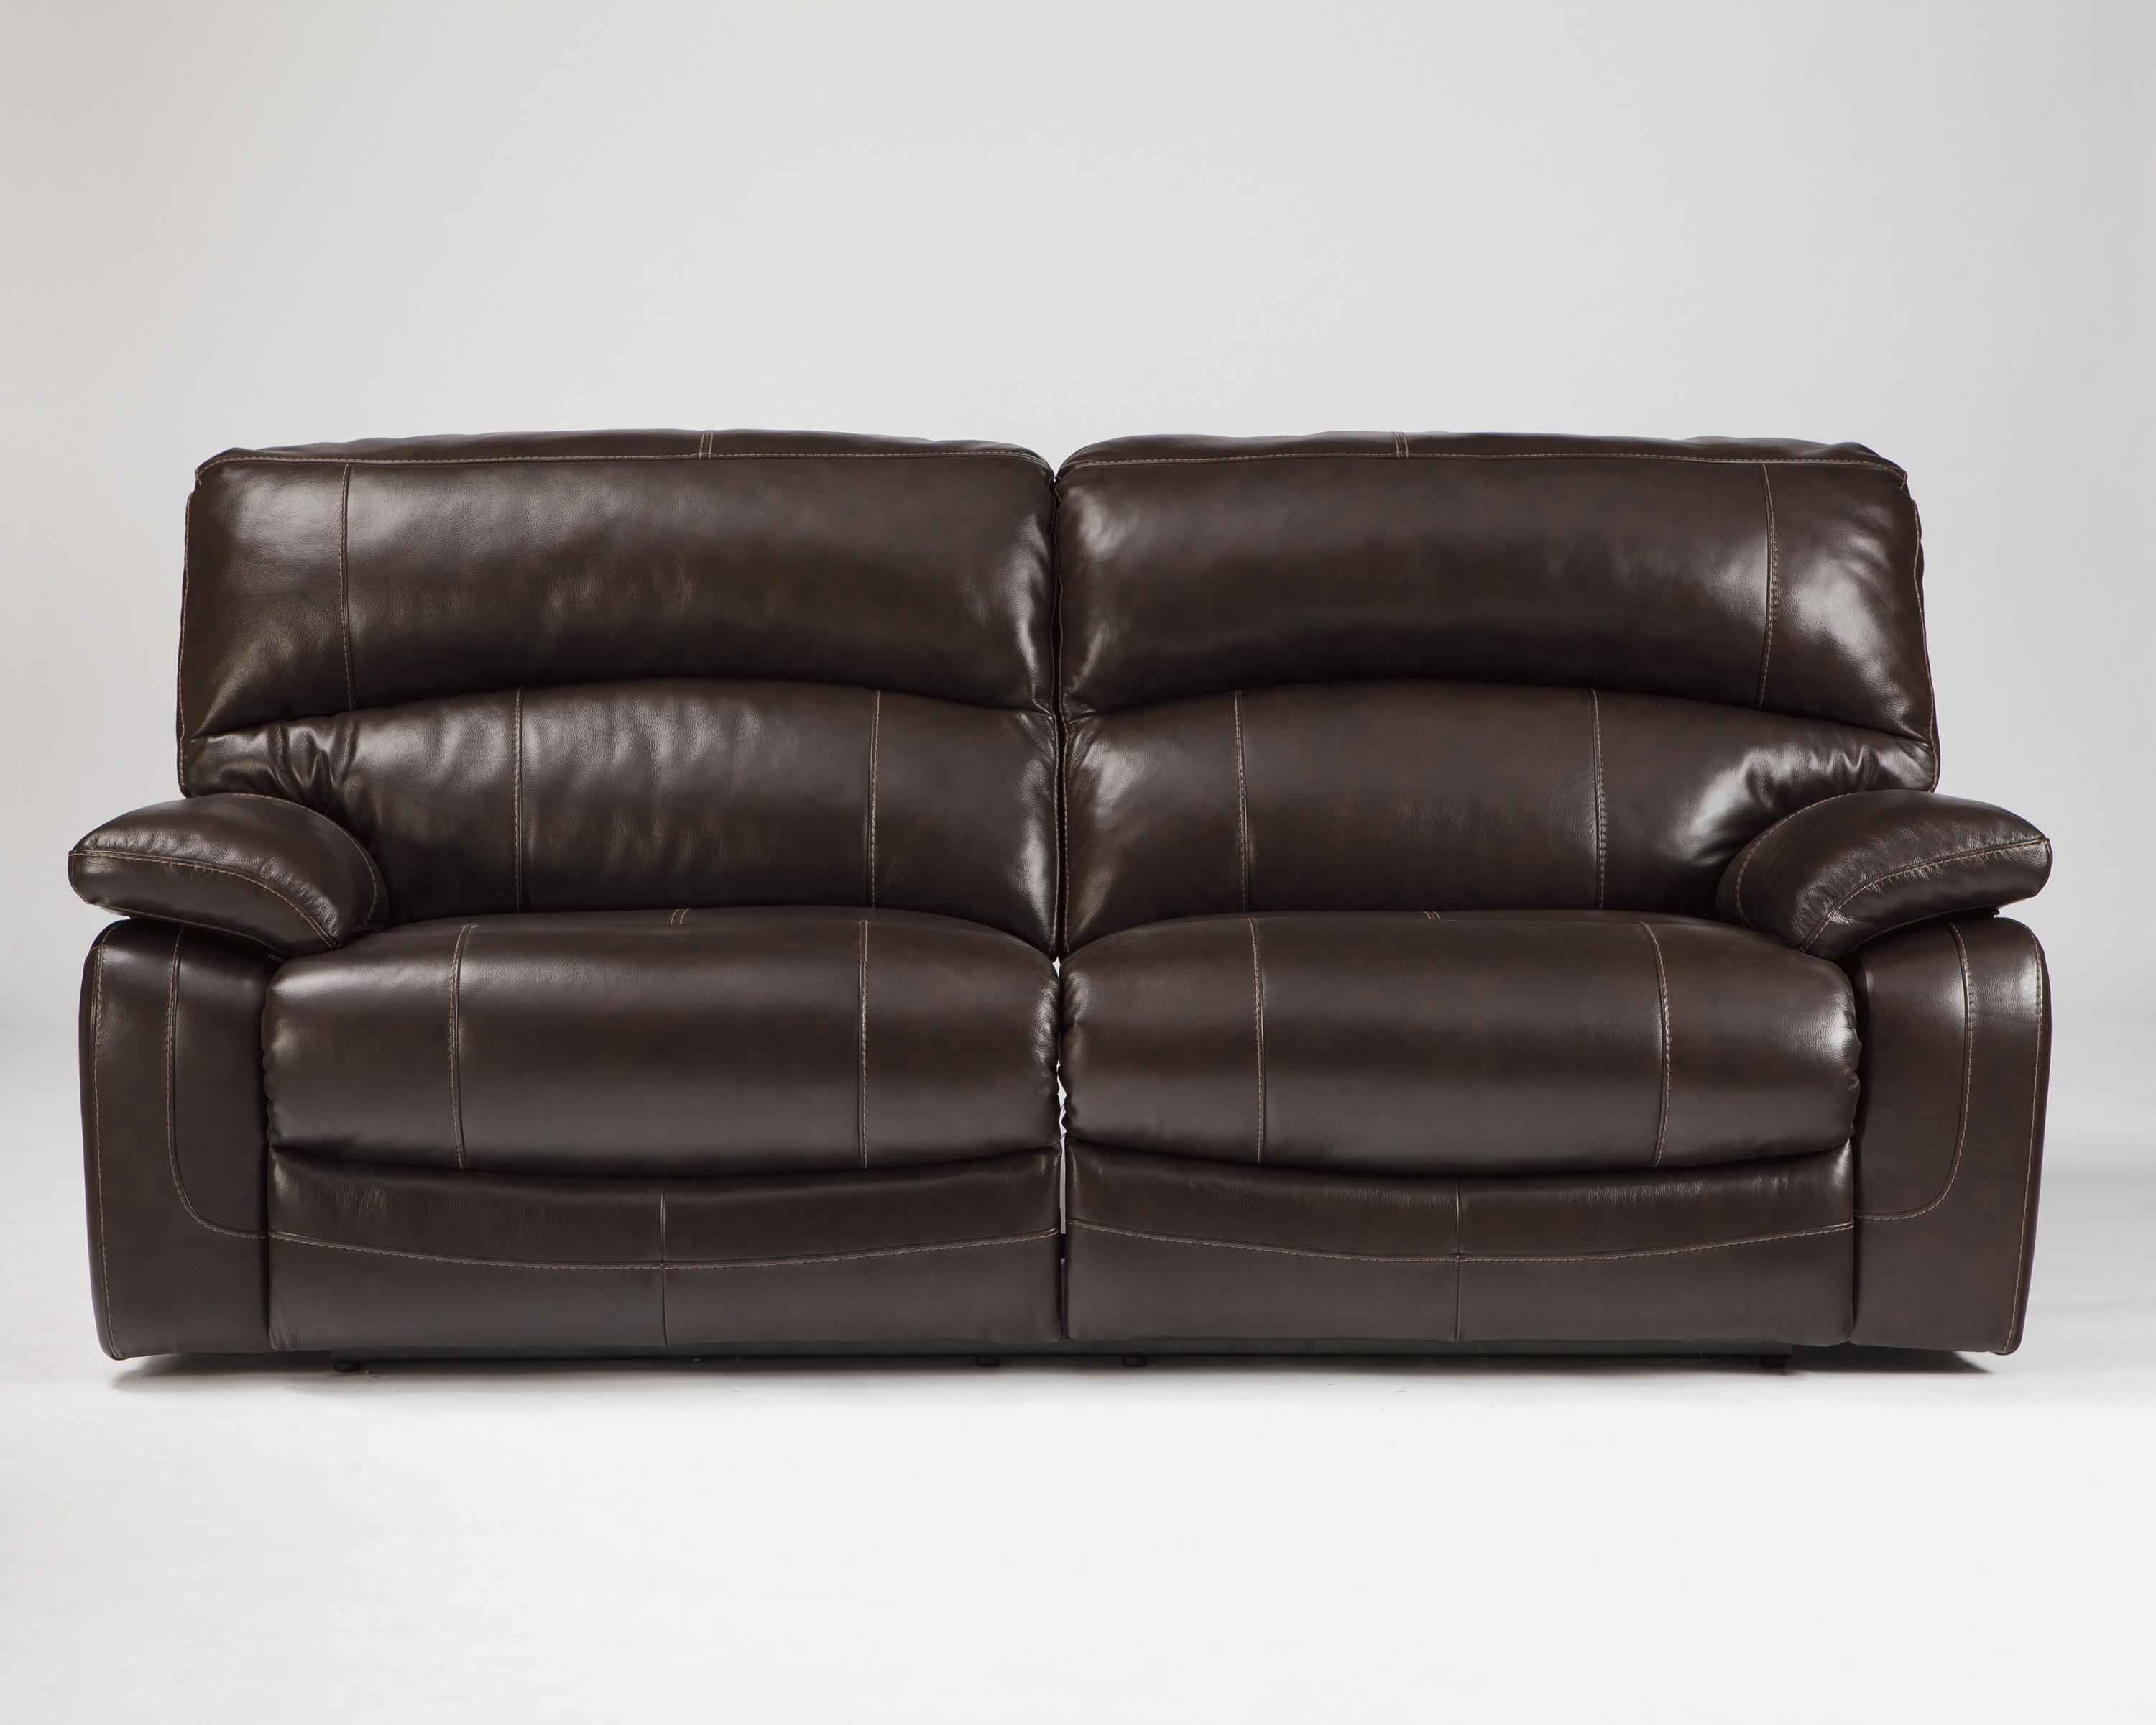 Factory Outlet Home Furniture | Value City Furniture | Tehranmix Pertaining To 2 Seater Recliner Leather Sofas (Image 7 of 20)